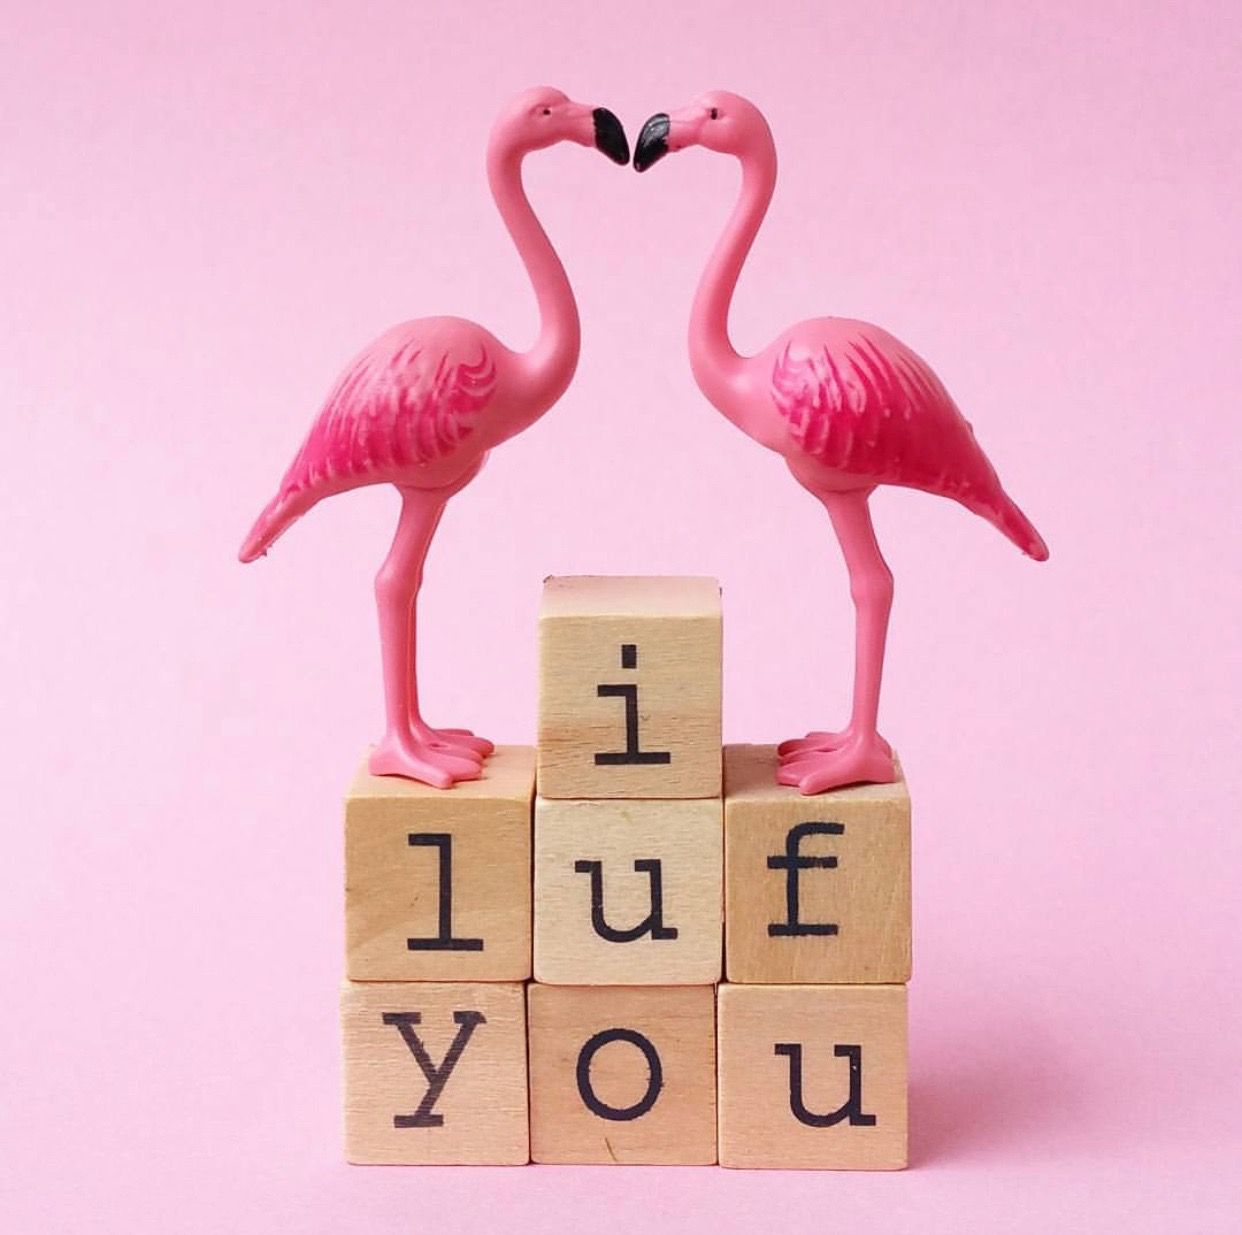 Pin By Cecily Bochannek On Pink: Pin By Haelli Retikis-Graser On Flamingo Stuff